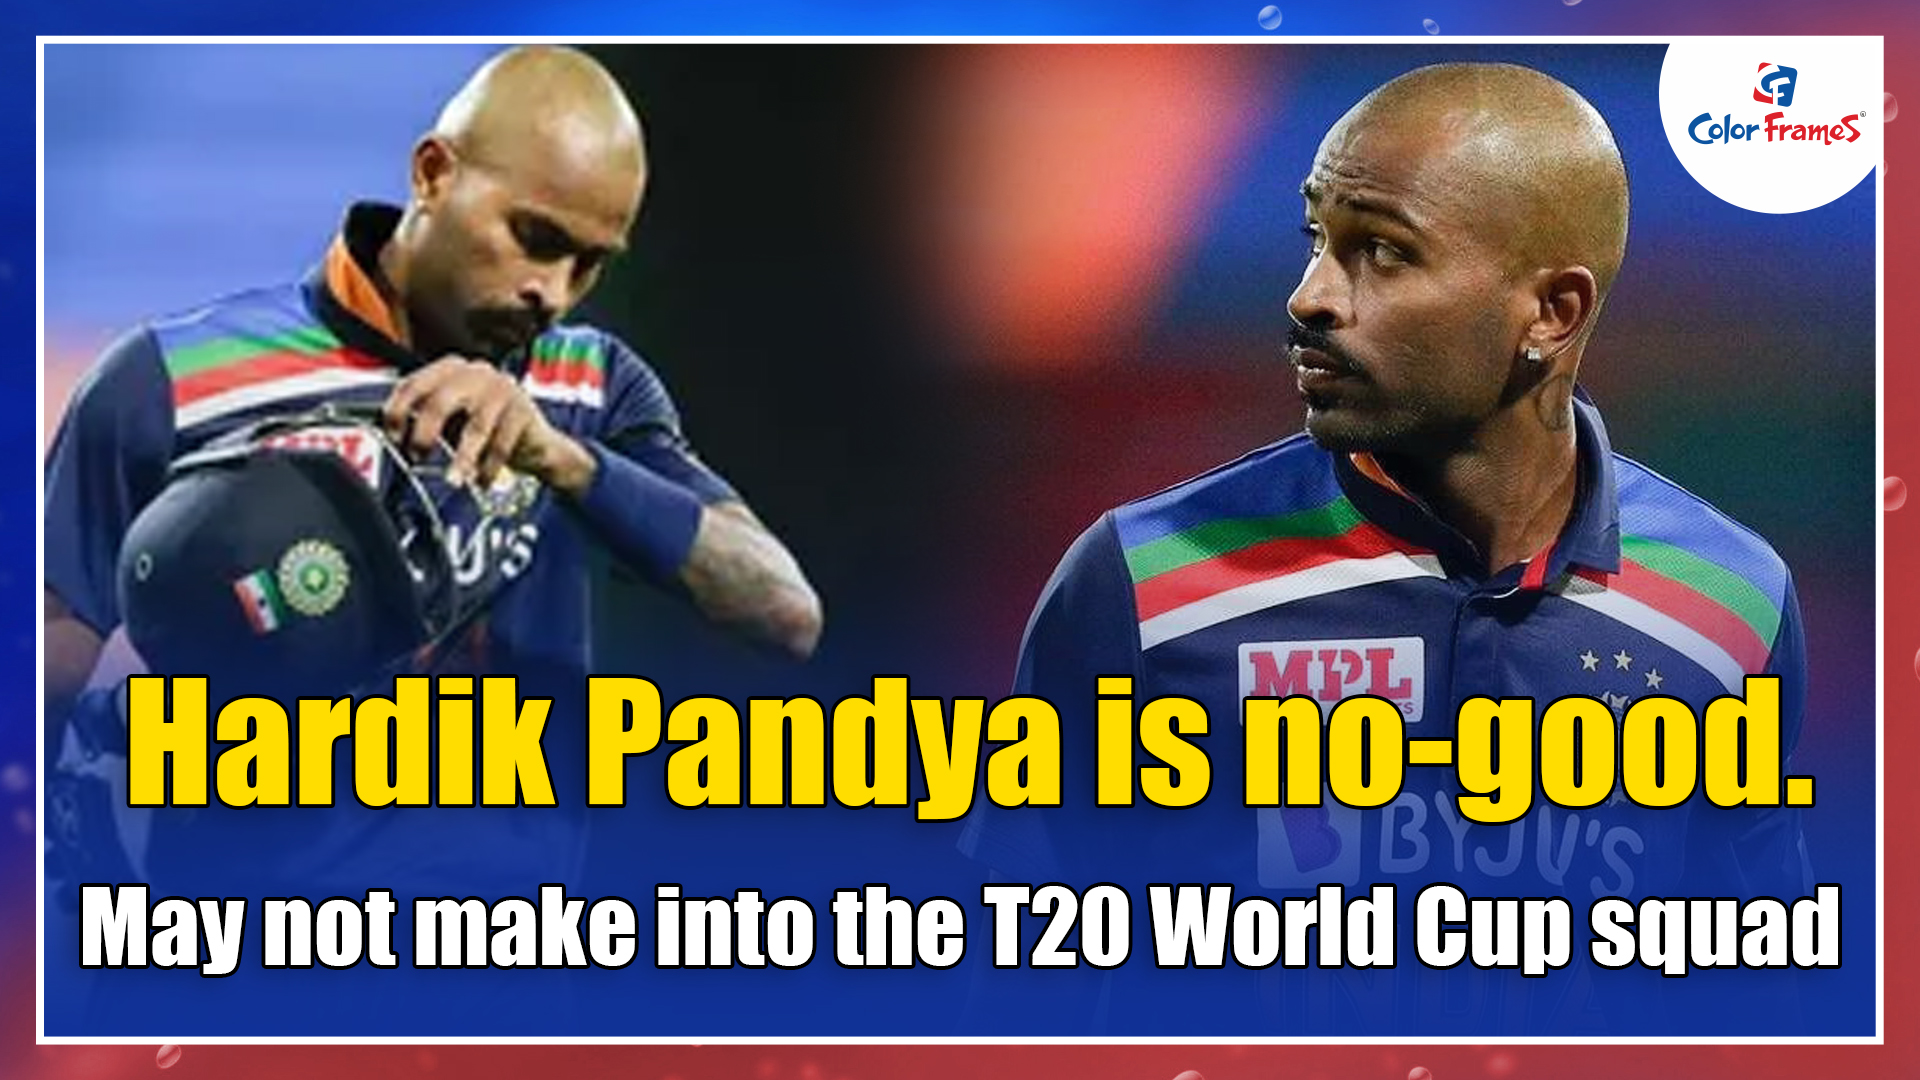 Hardik Pandya is no-good. May not make into the T20 World Cup squad